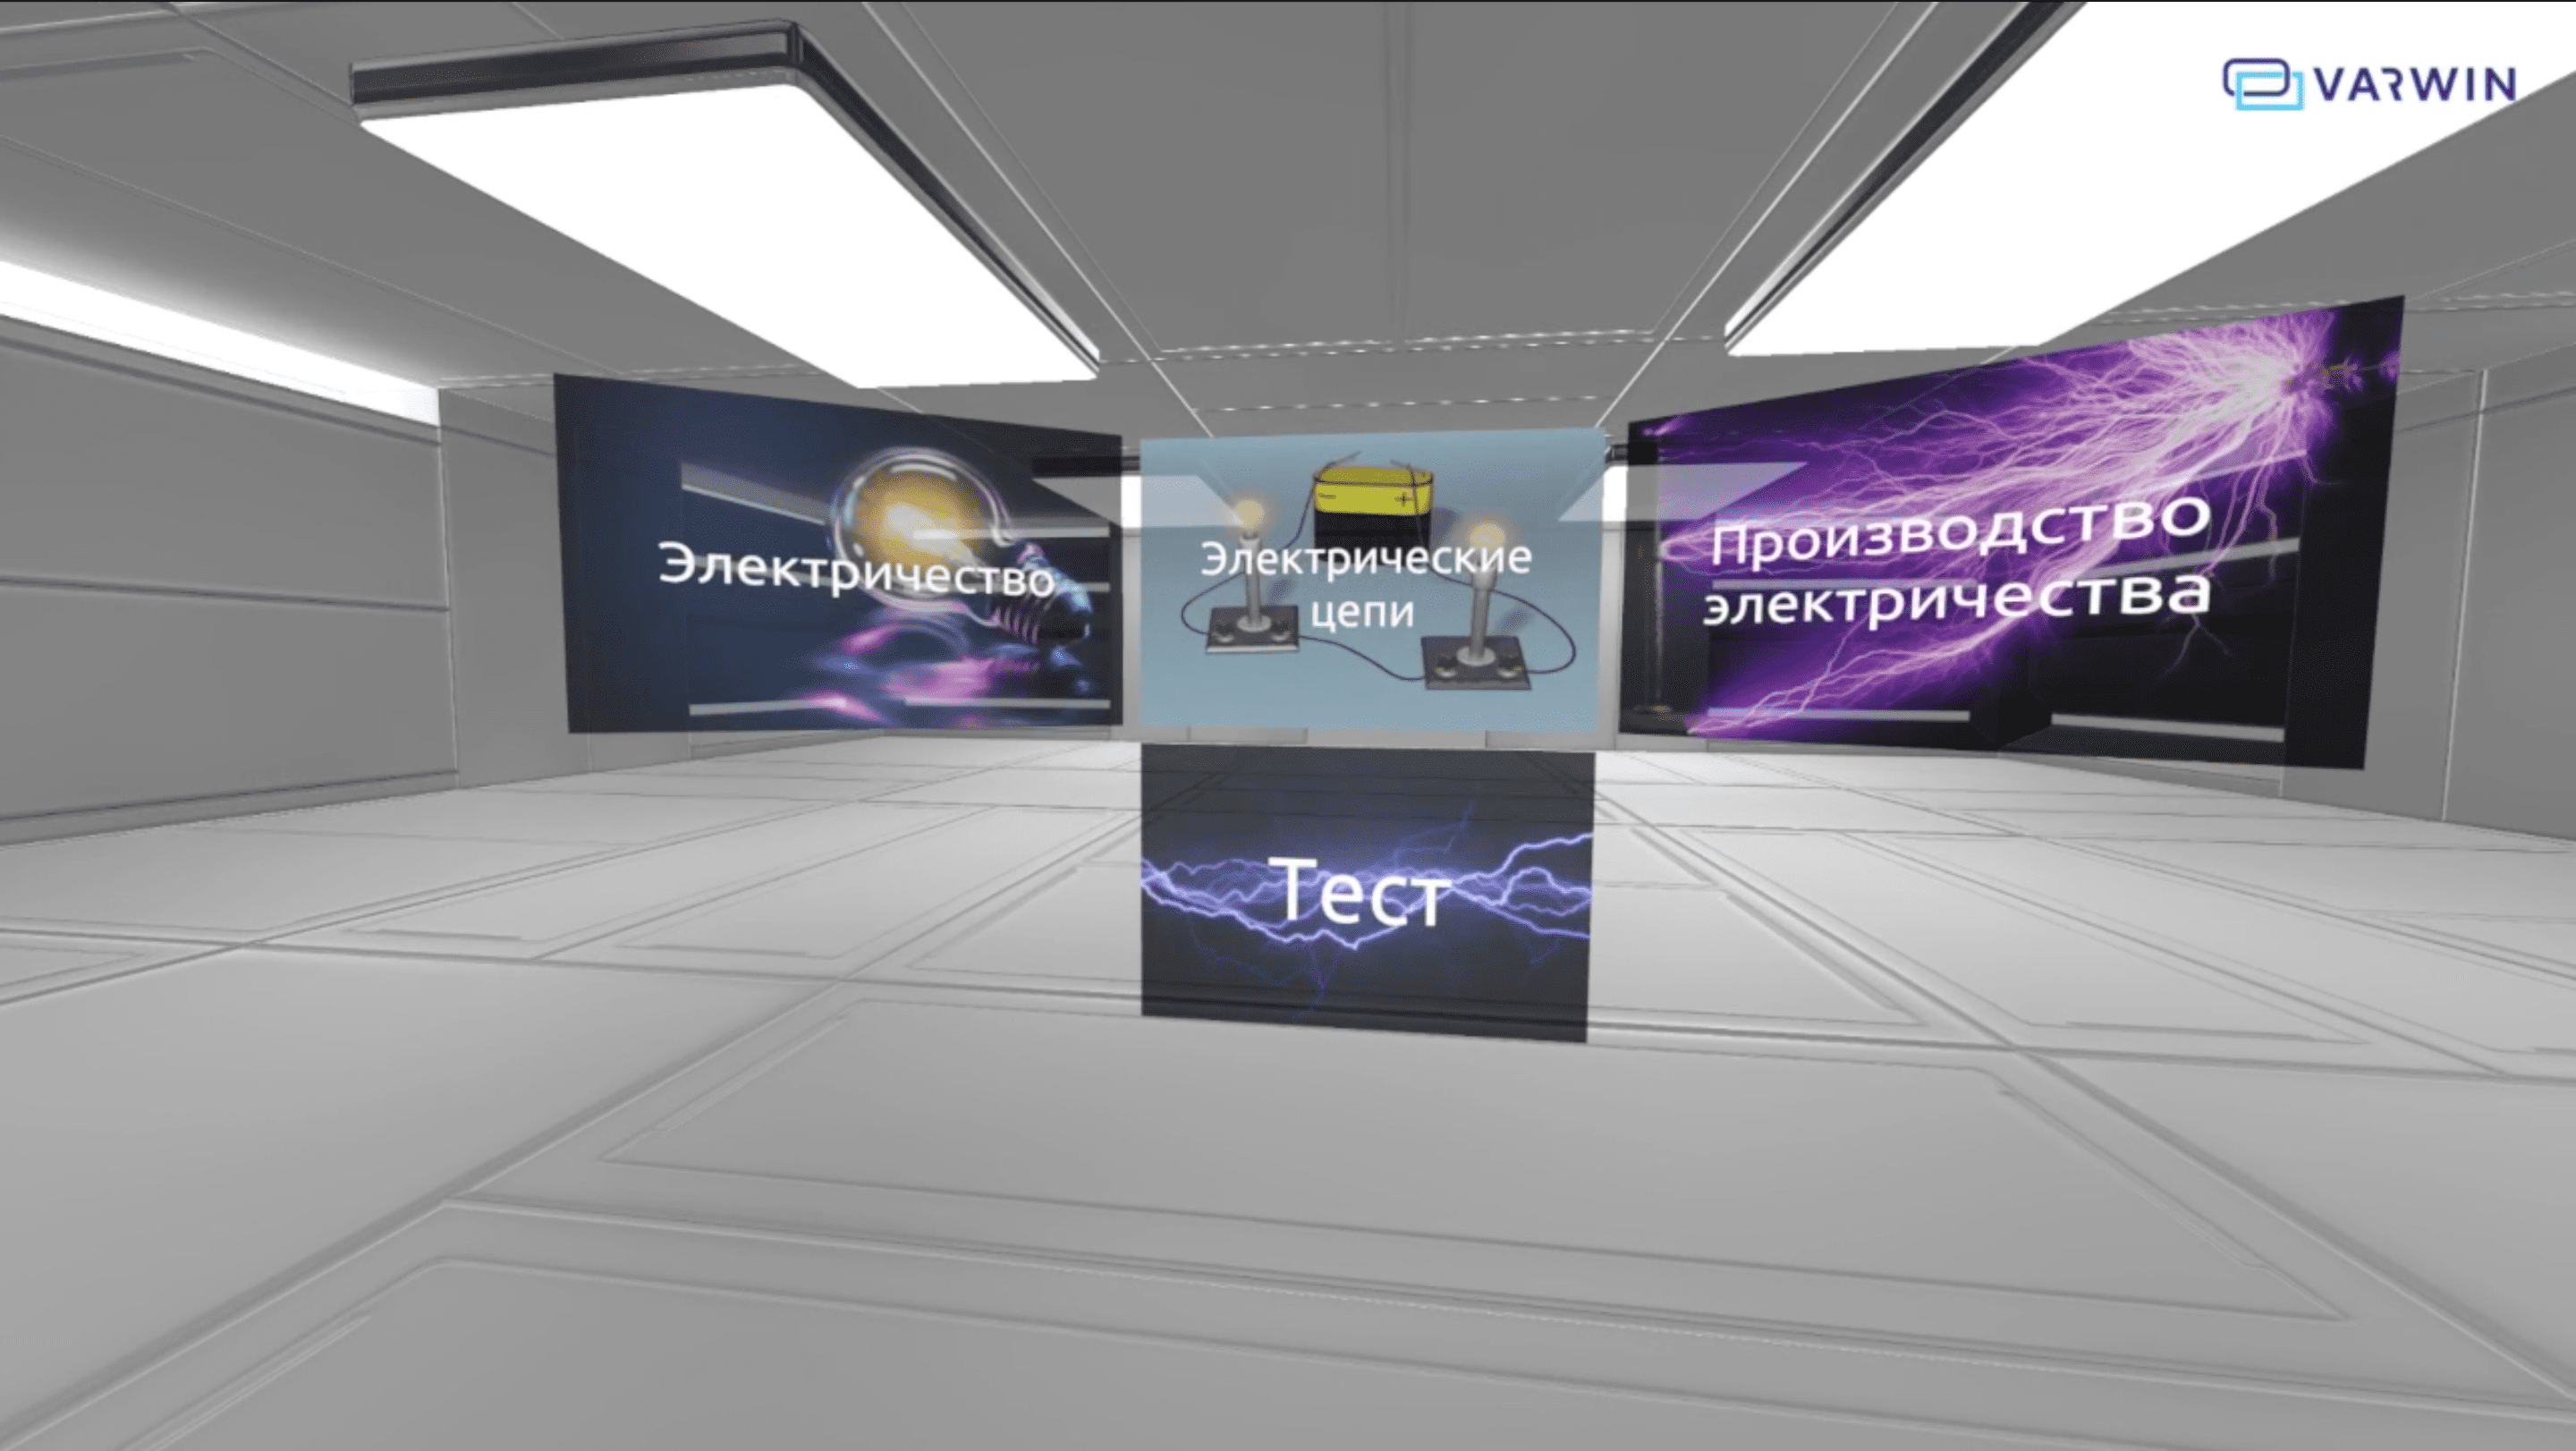 Museum of Electricity in VR | Varwin Education